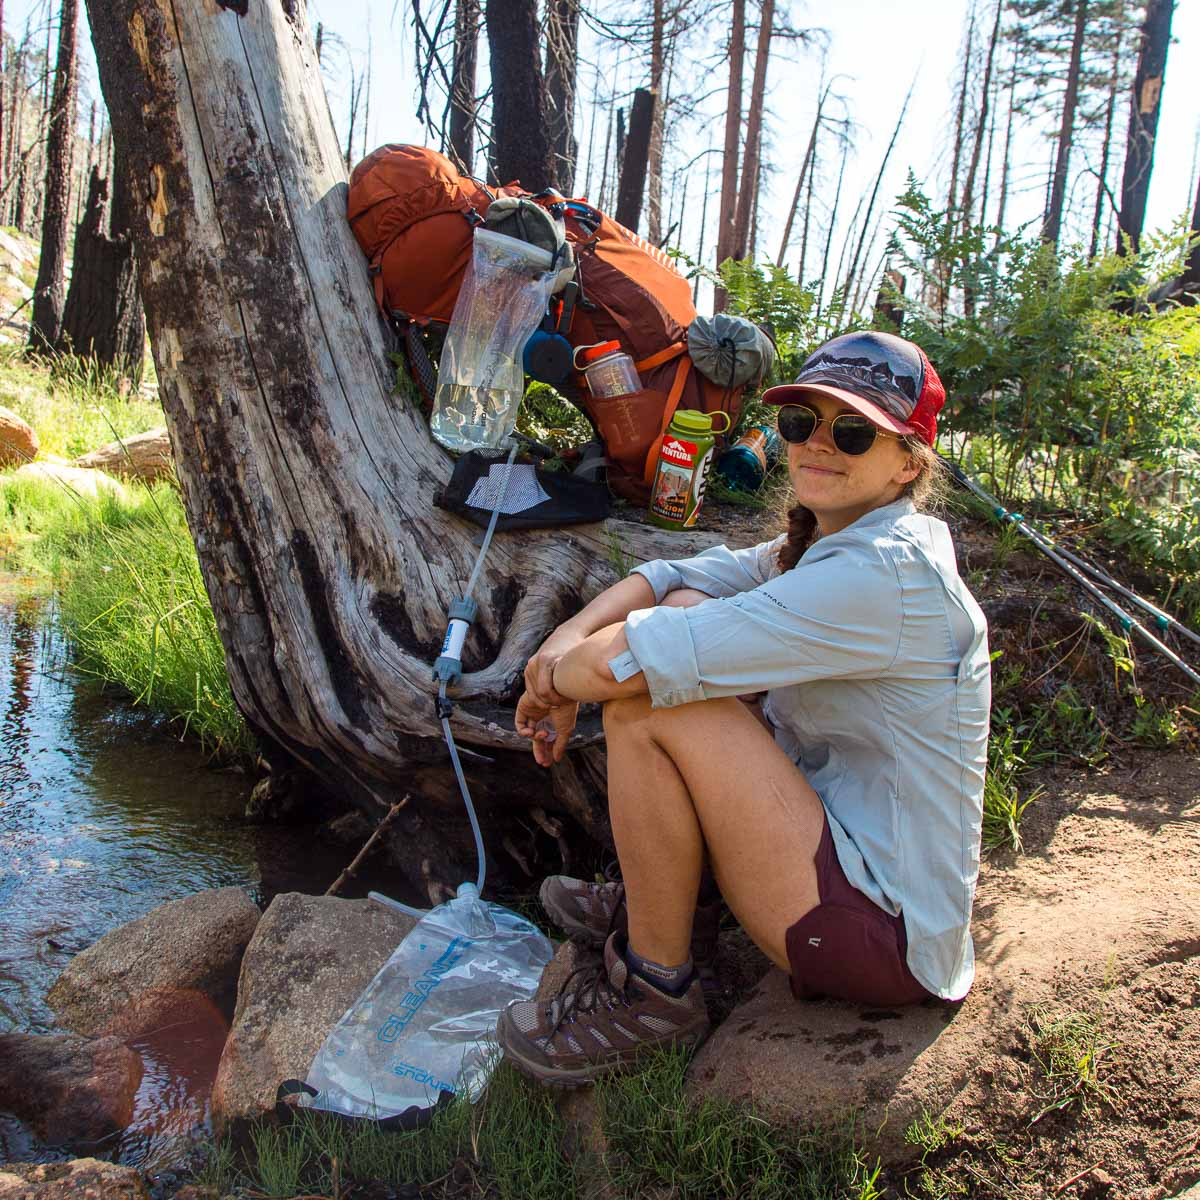 Megan sitting next to the Platypus GravityWorks water filter, which is rigged up on a tree next to a stream